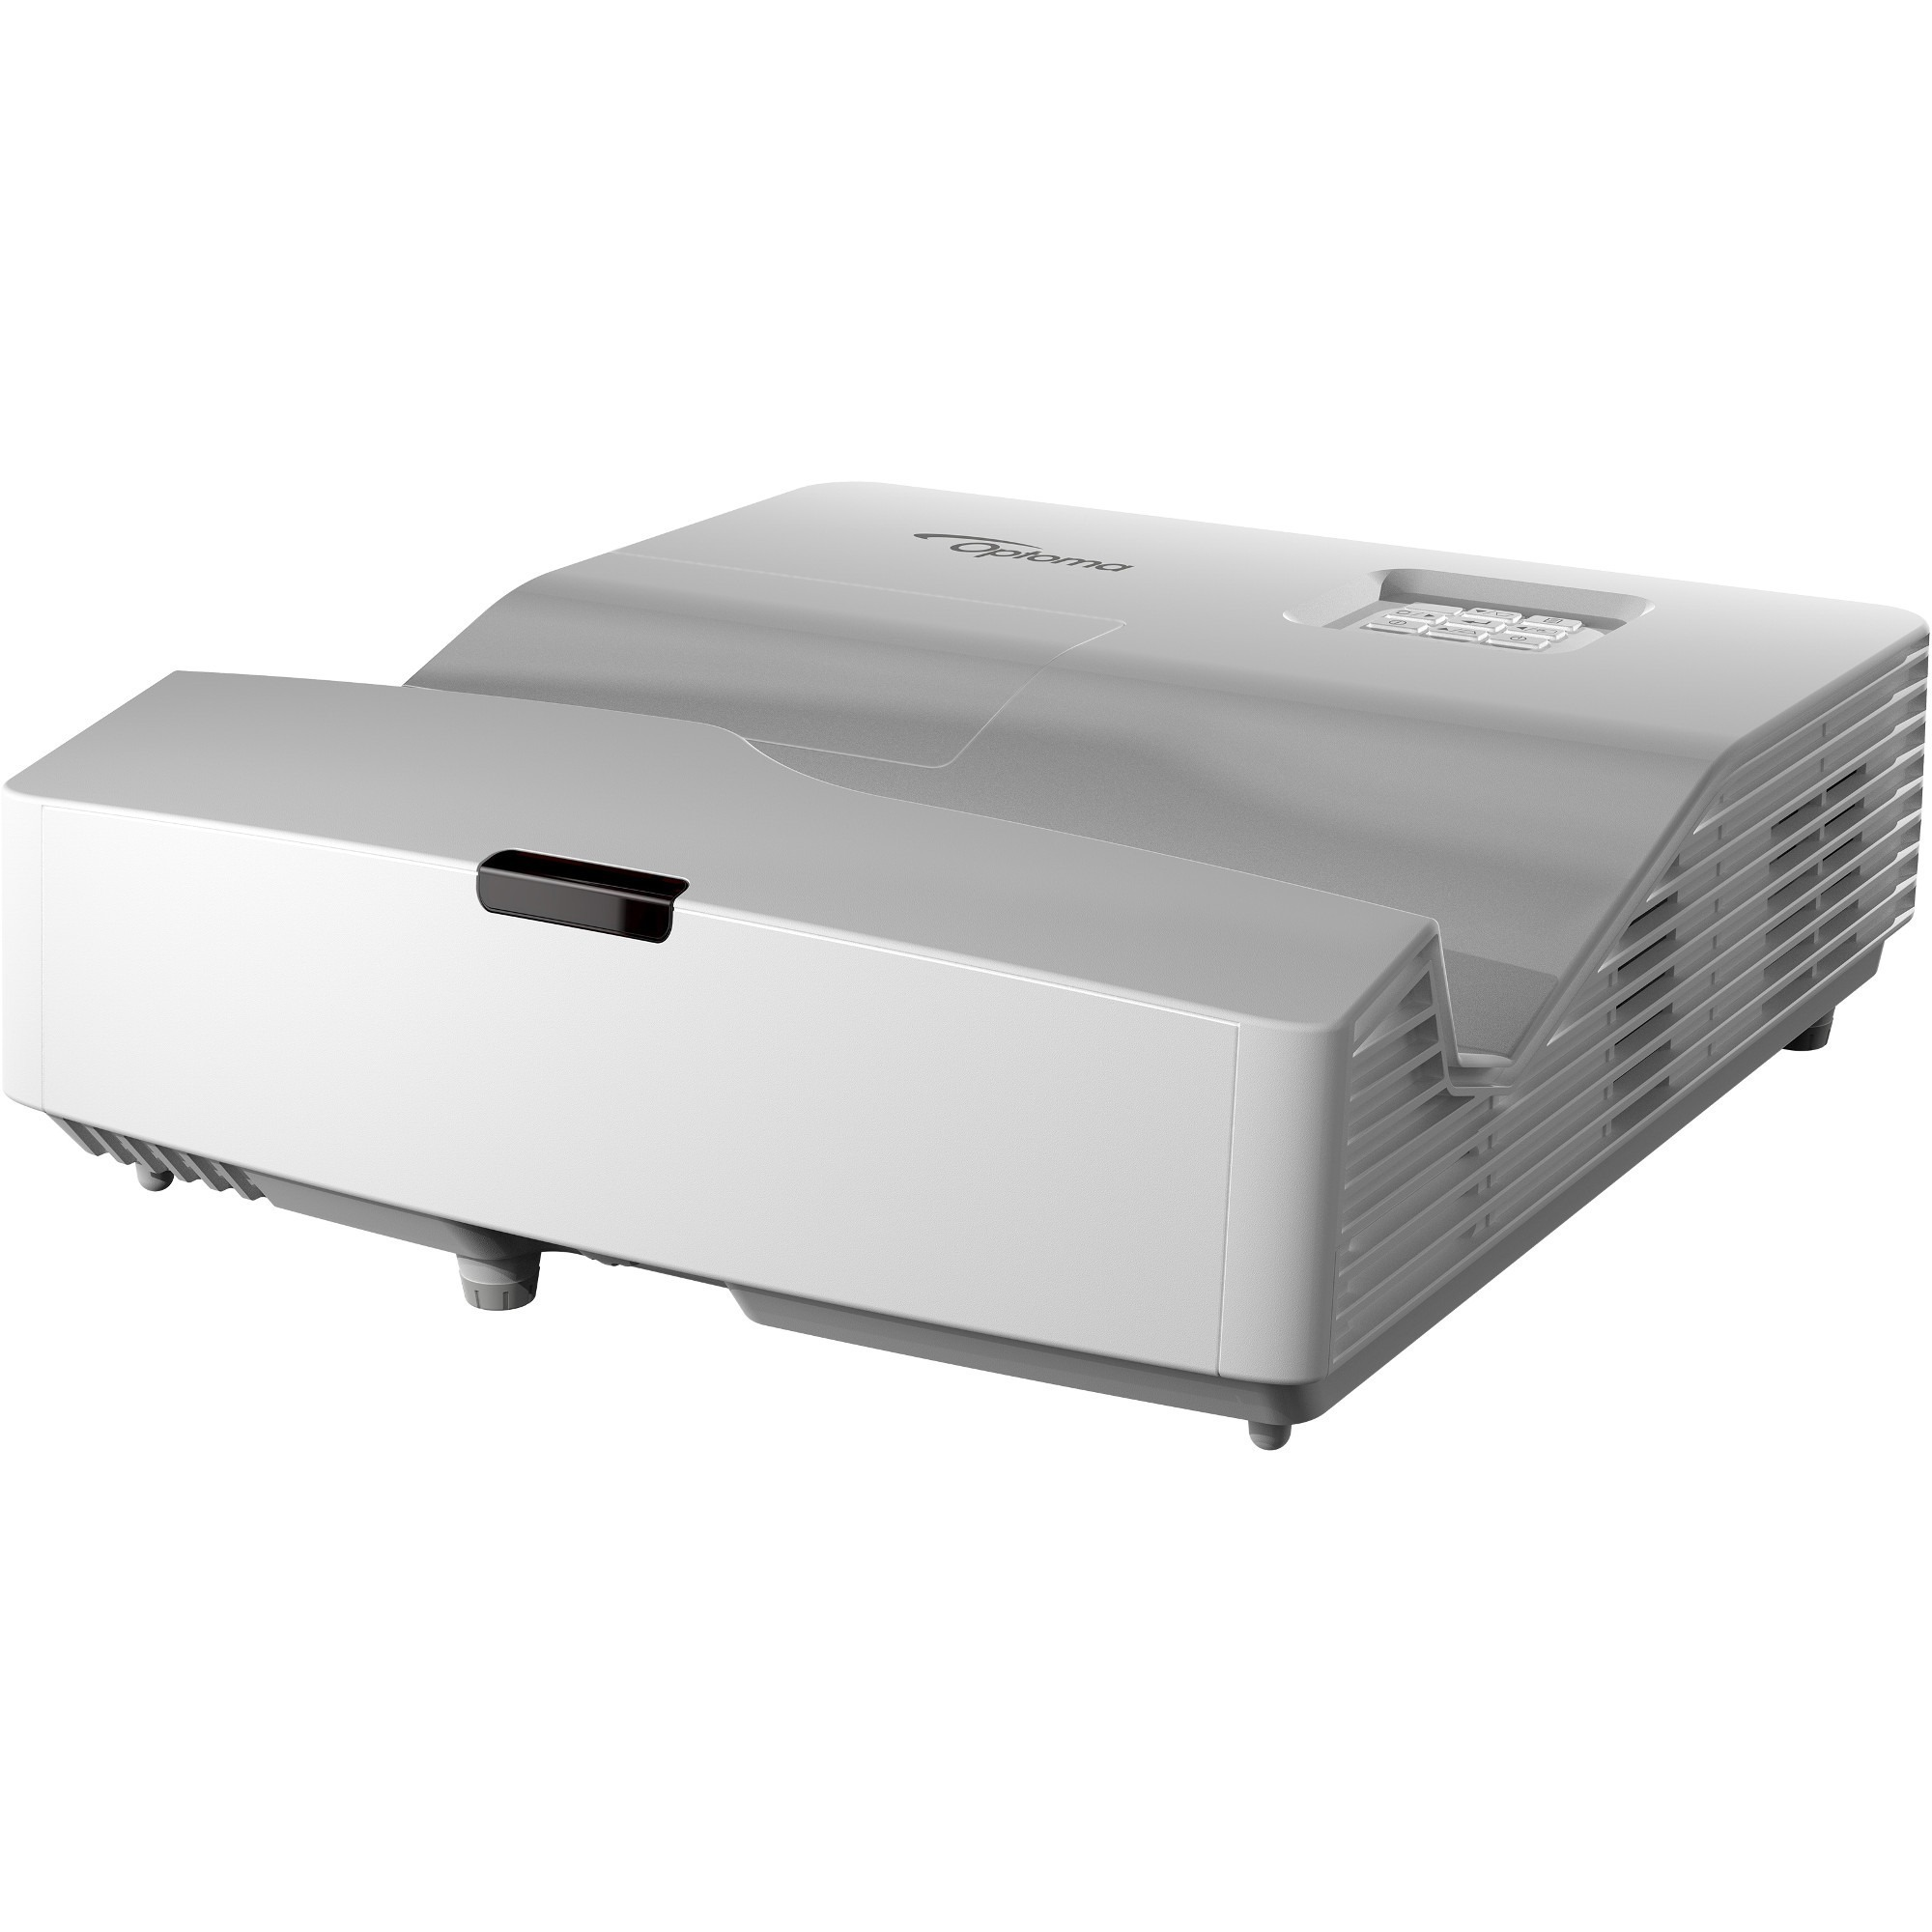 Optoma GT5600 3D Ultra Short Throw DLP Projector - 16:9 - White_subImage_1